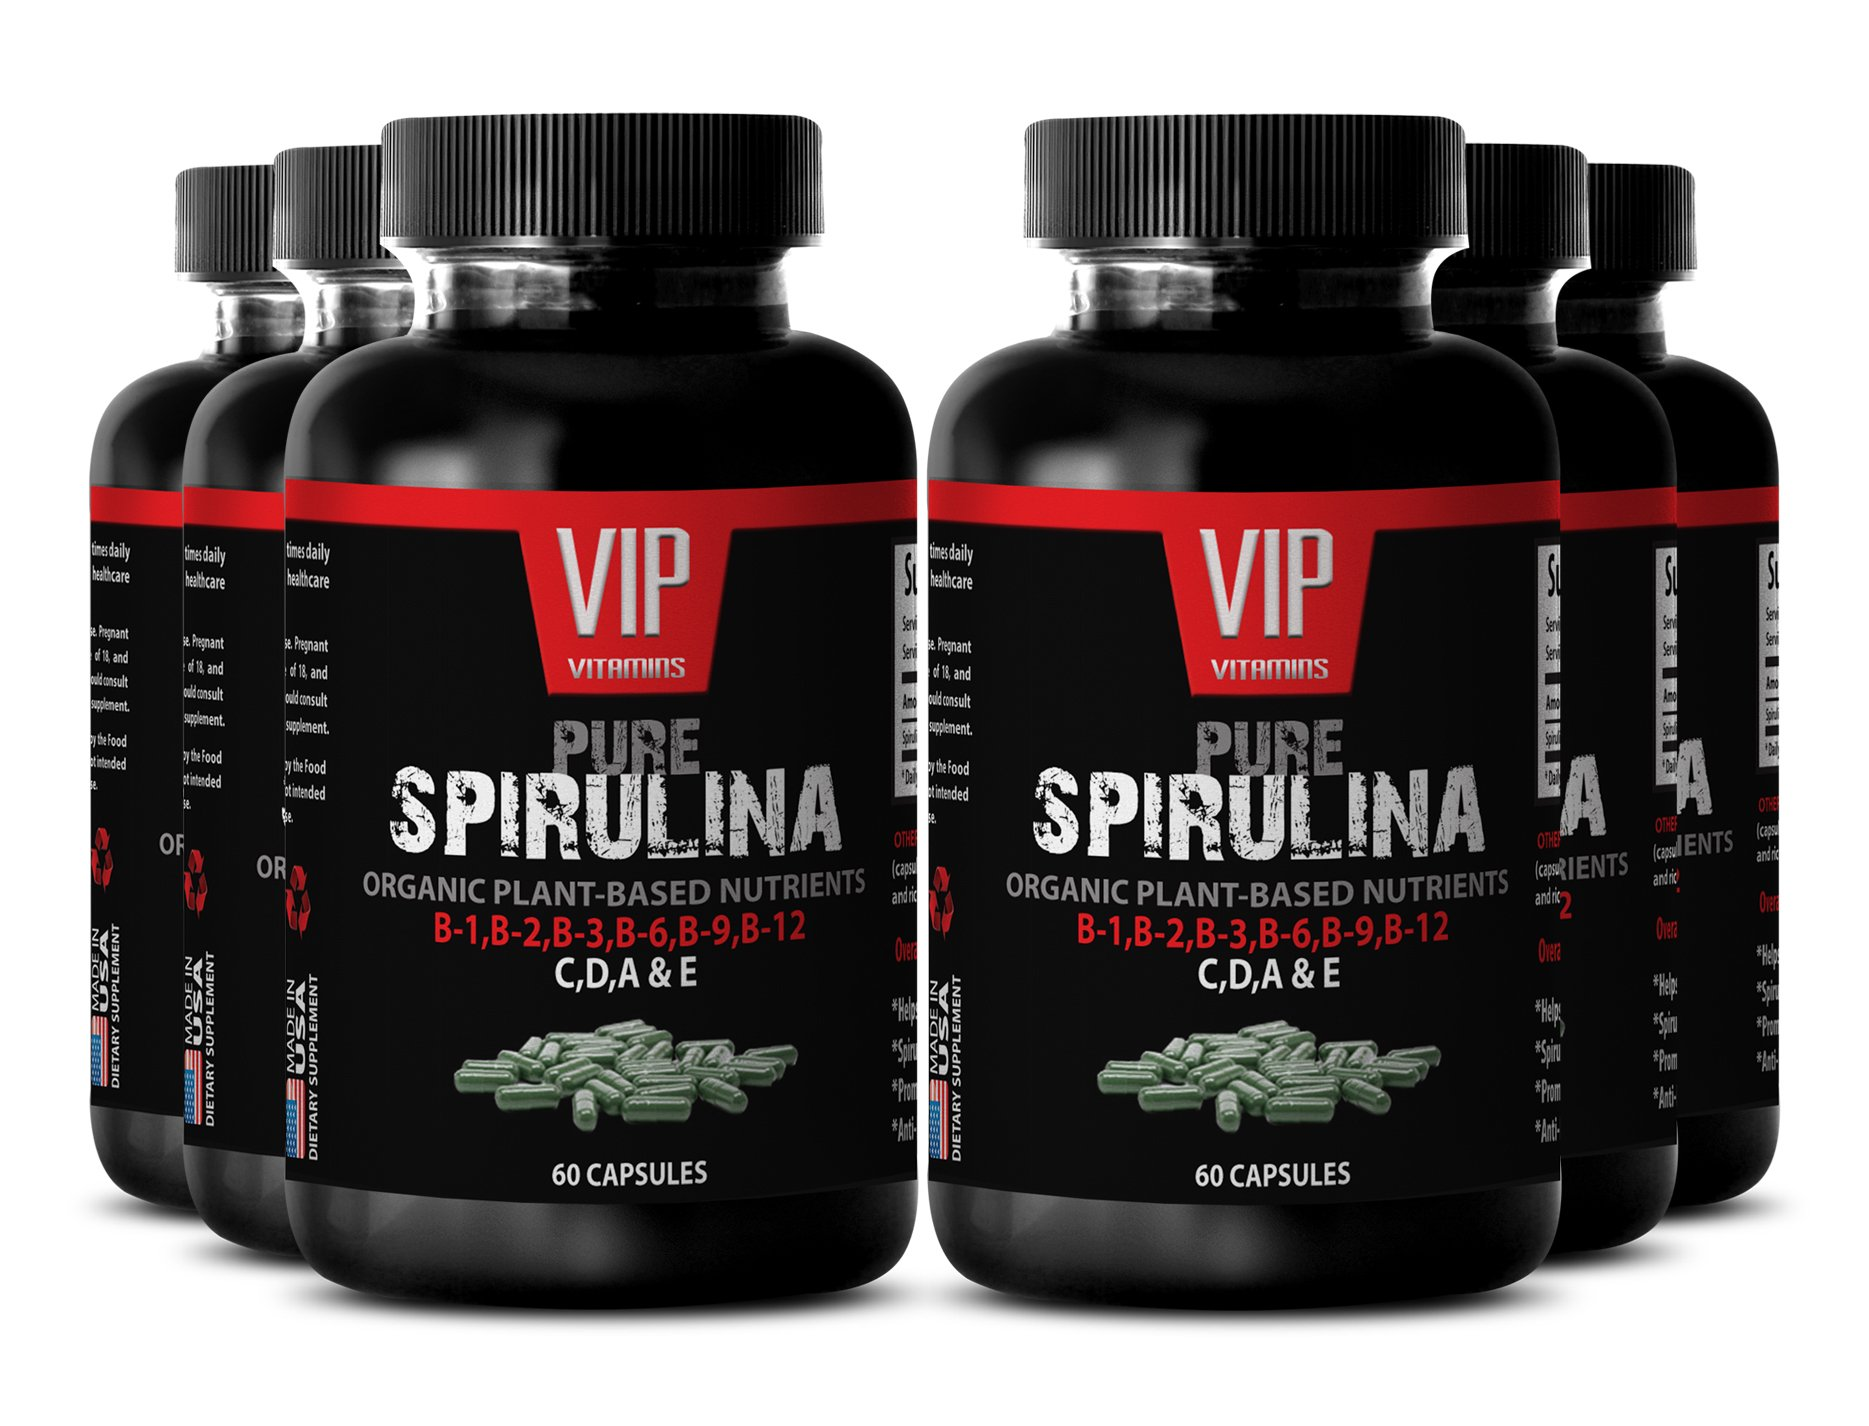 Spirulina 500 mg Extract - For Cellular Health and Energy (6 Bottles 360 Capsules)